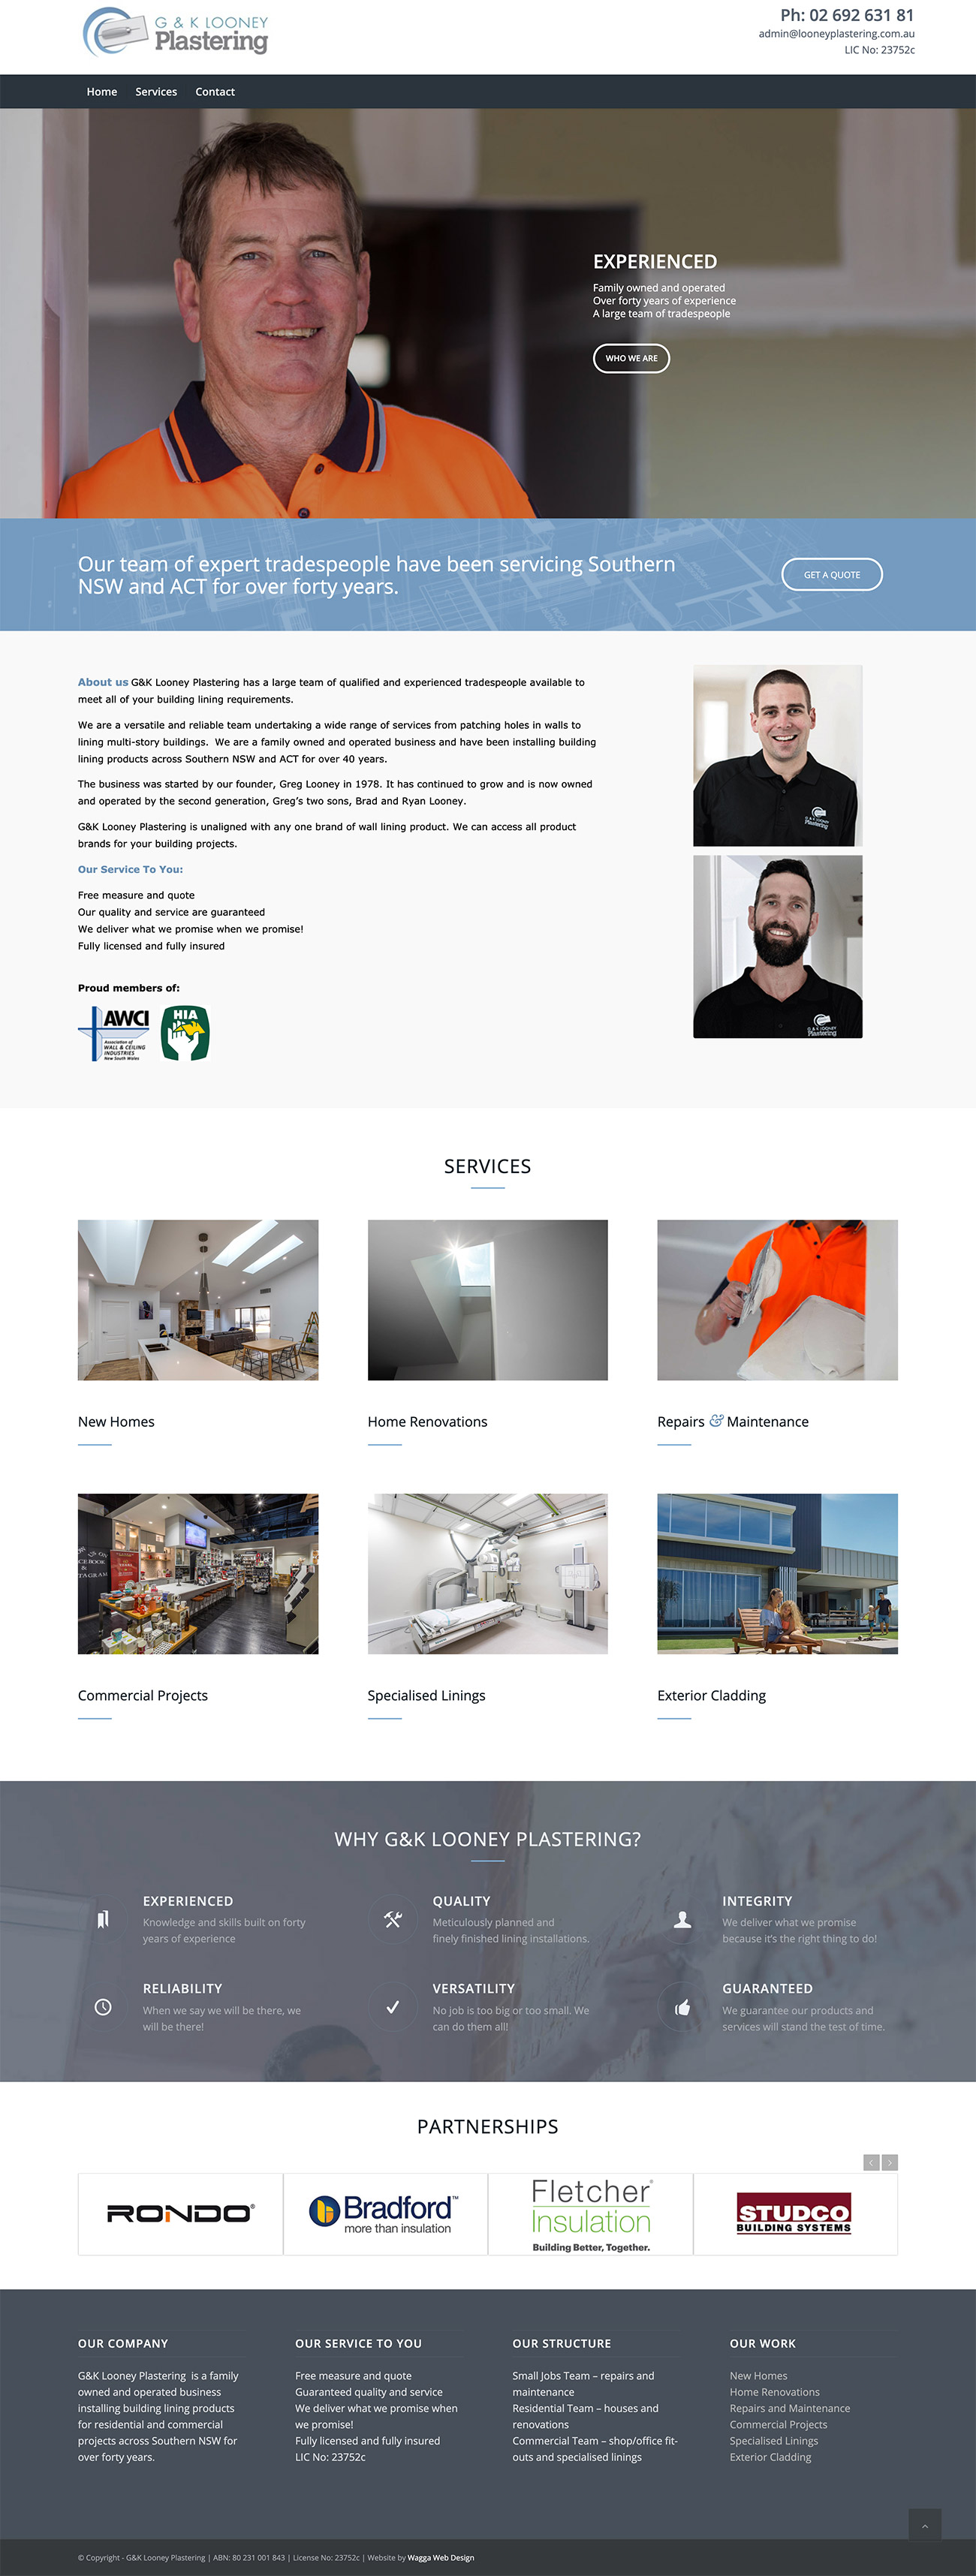 Plastering website